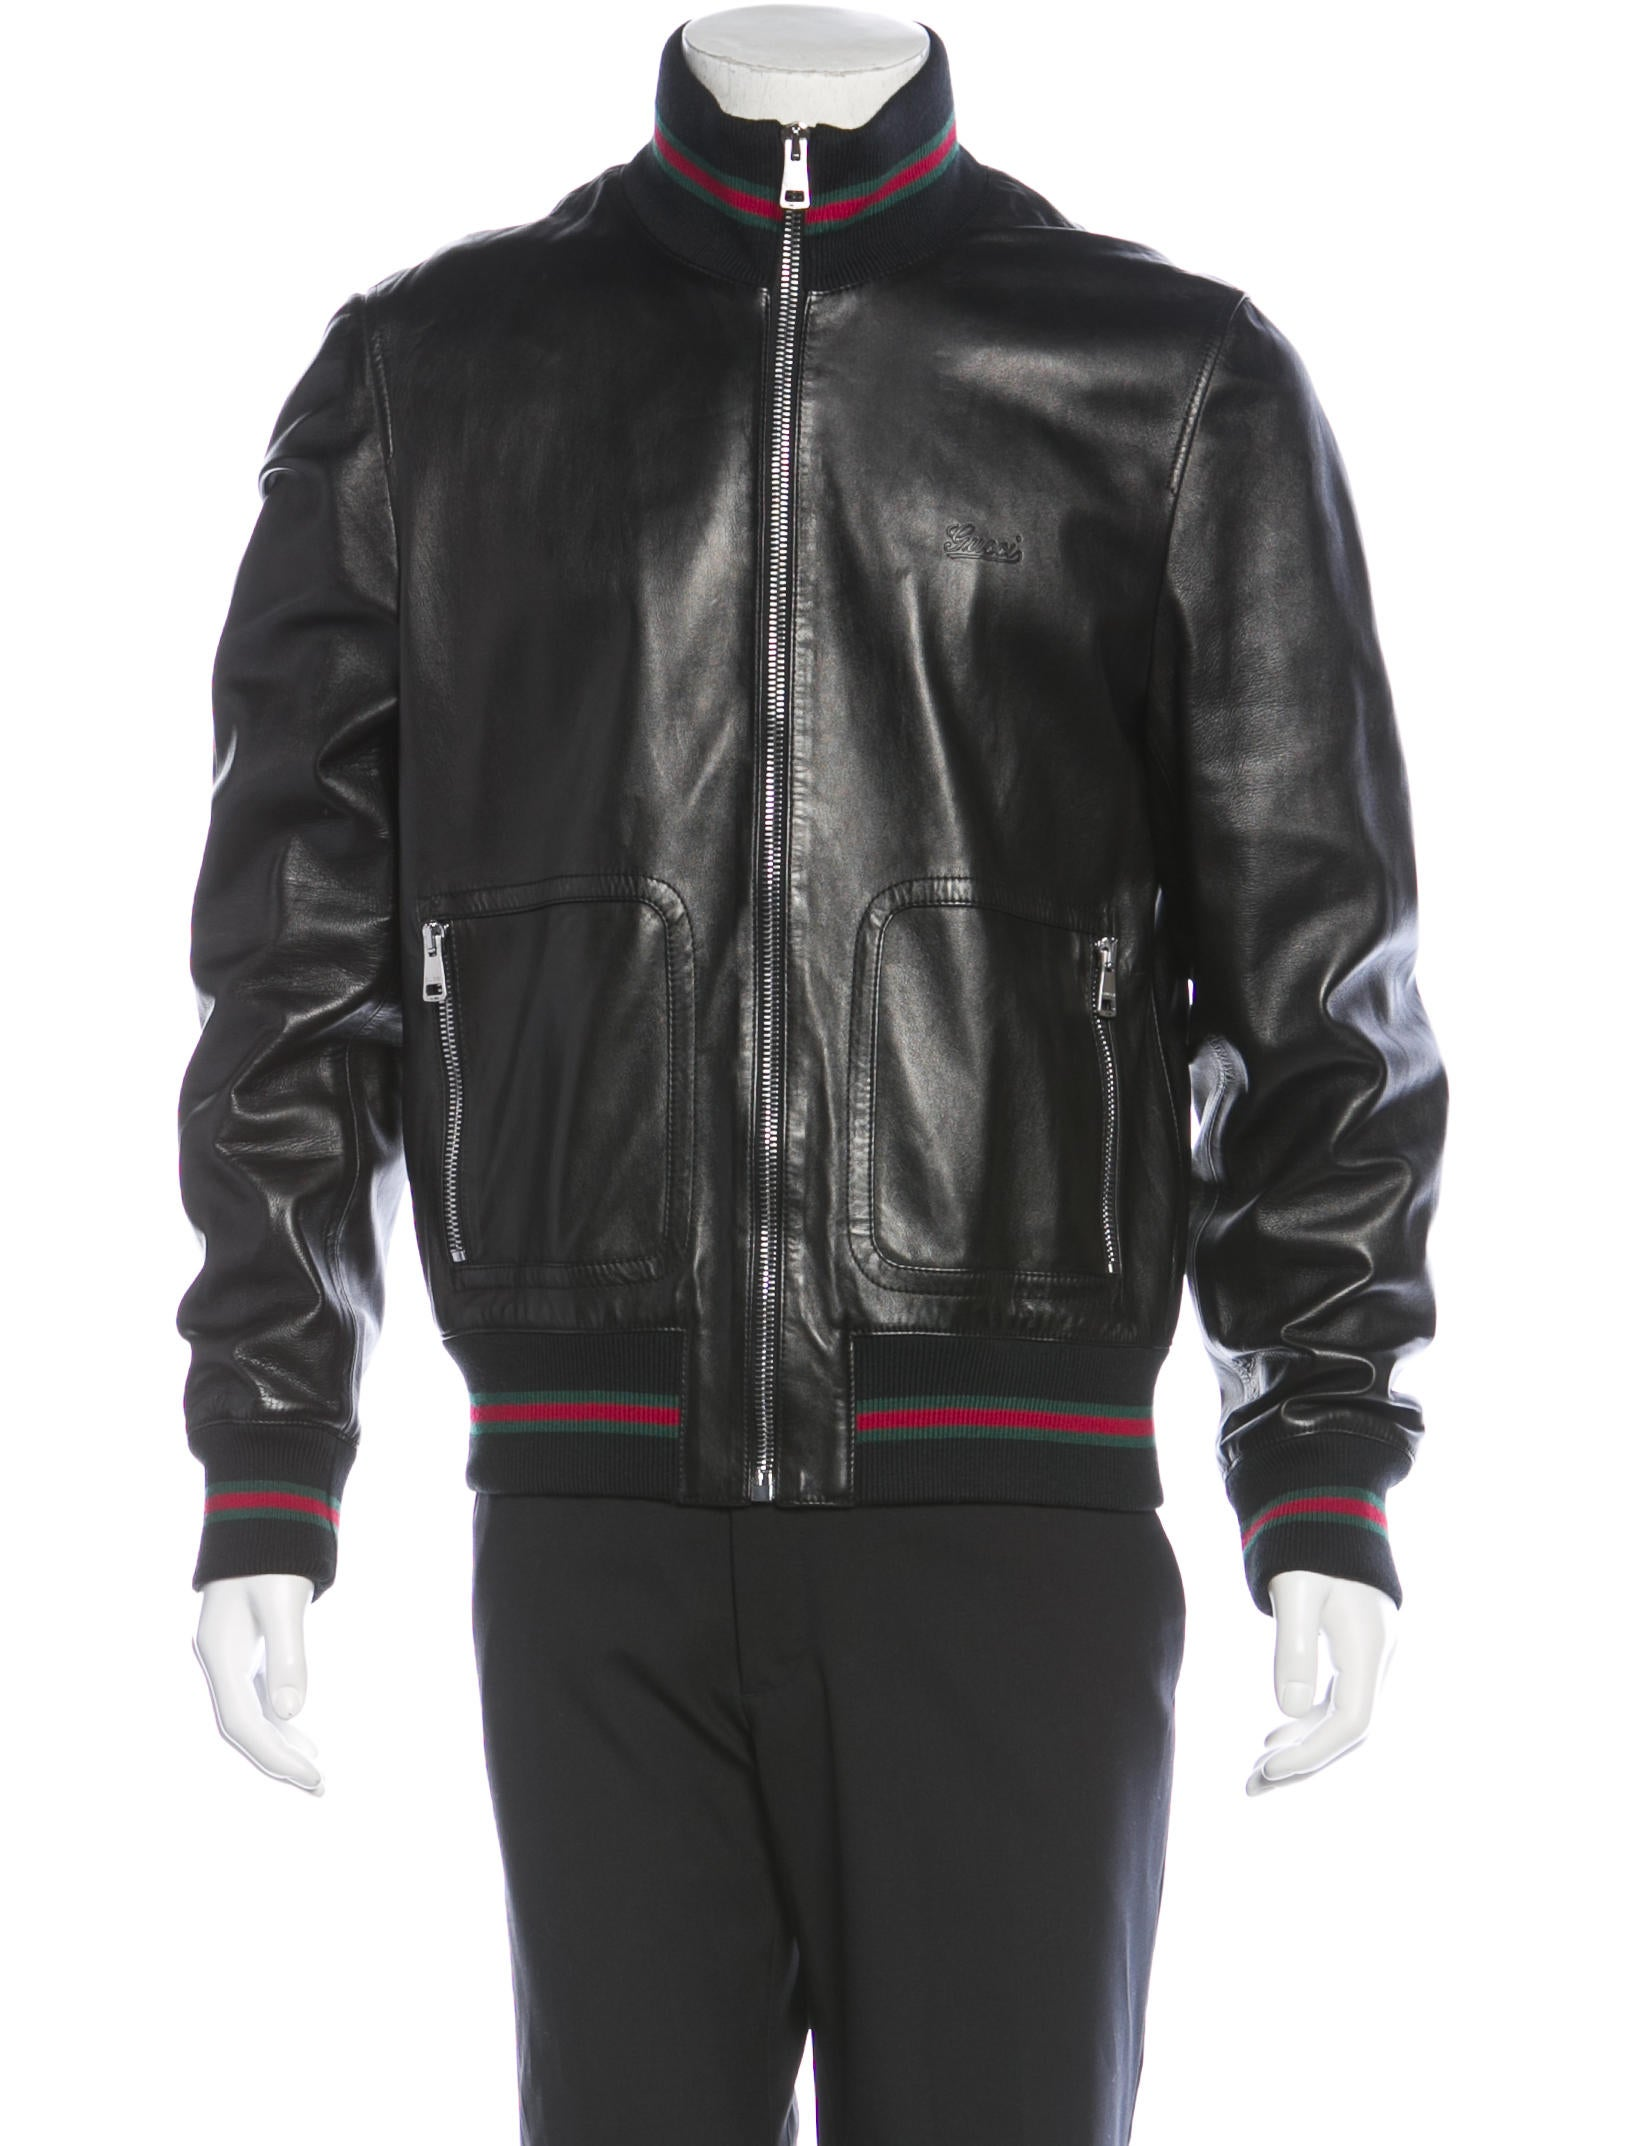 Gucci Web-Trimmed Leather Jacket - Clothing - GUC84071 ...